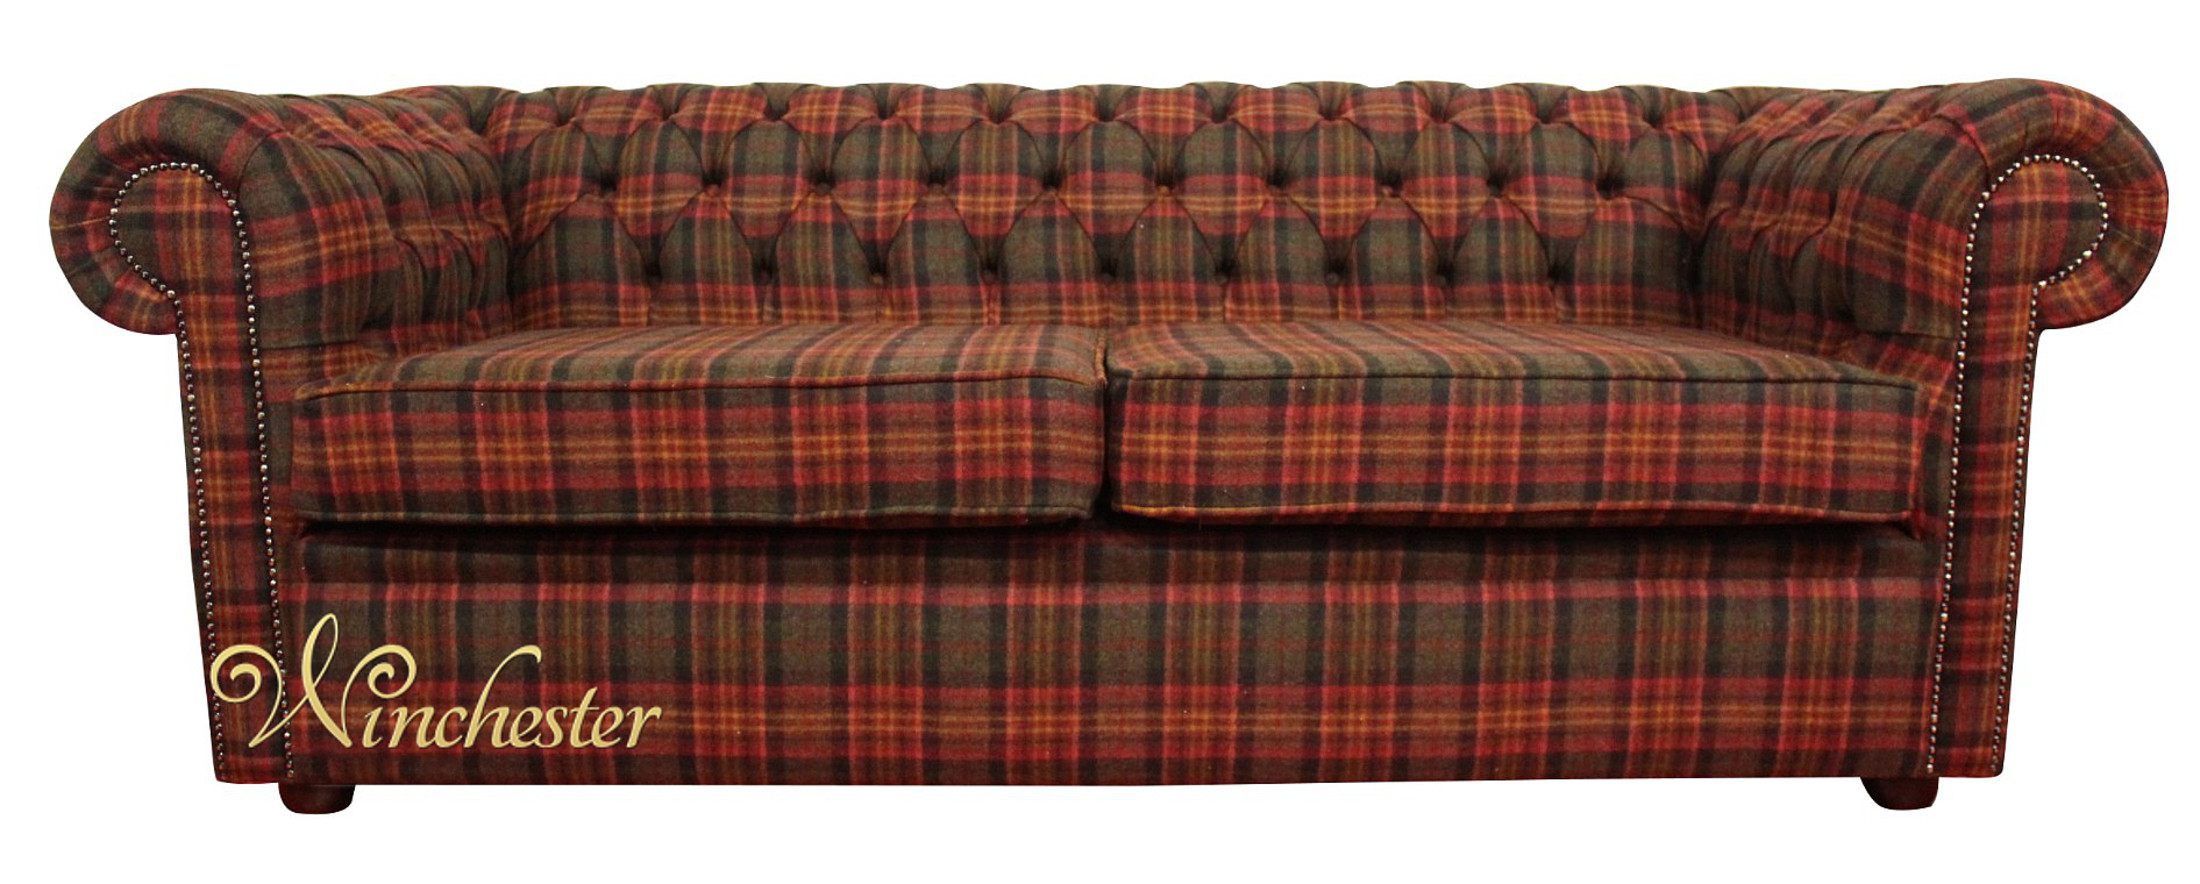 harris tweed bowmore midi sofa hay bed fabric easylovely about ...